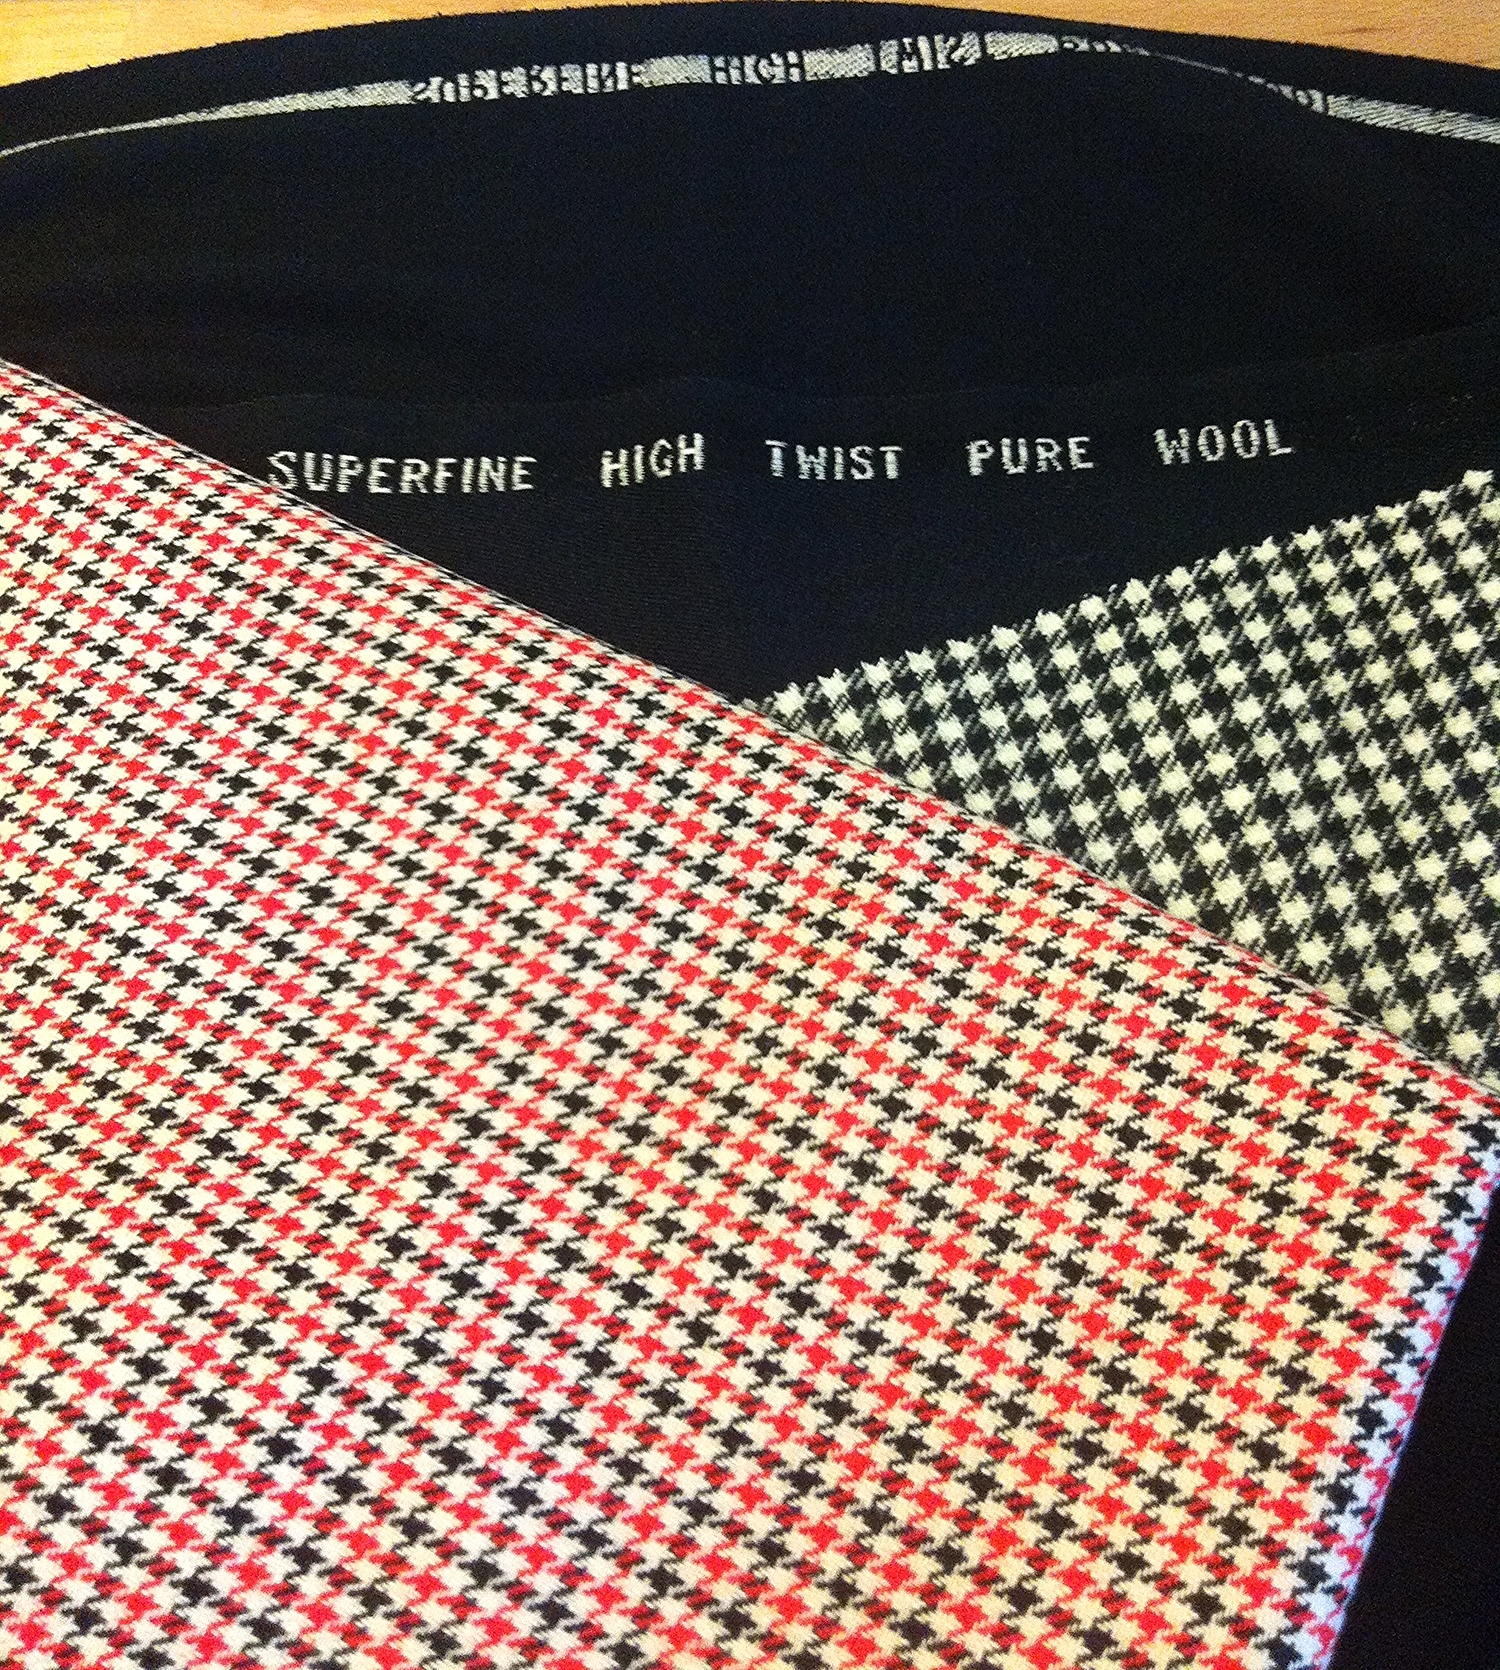 The other fabric featured, the black & white shepherd's check,  has become a super cute pair of shorts to be featured in another post